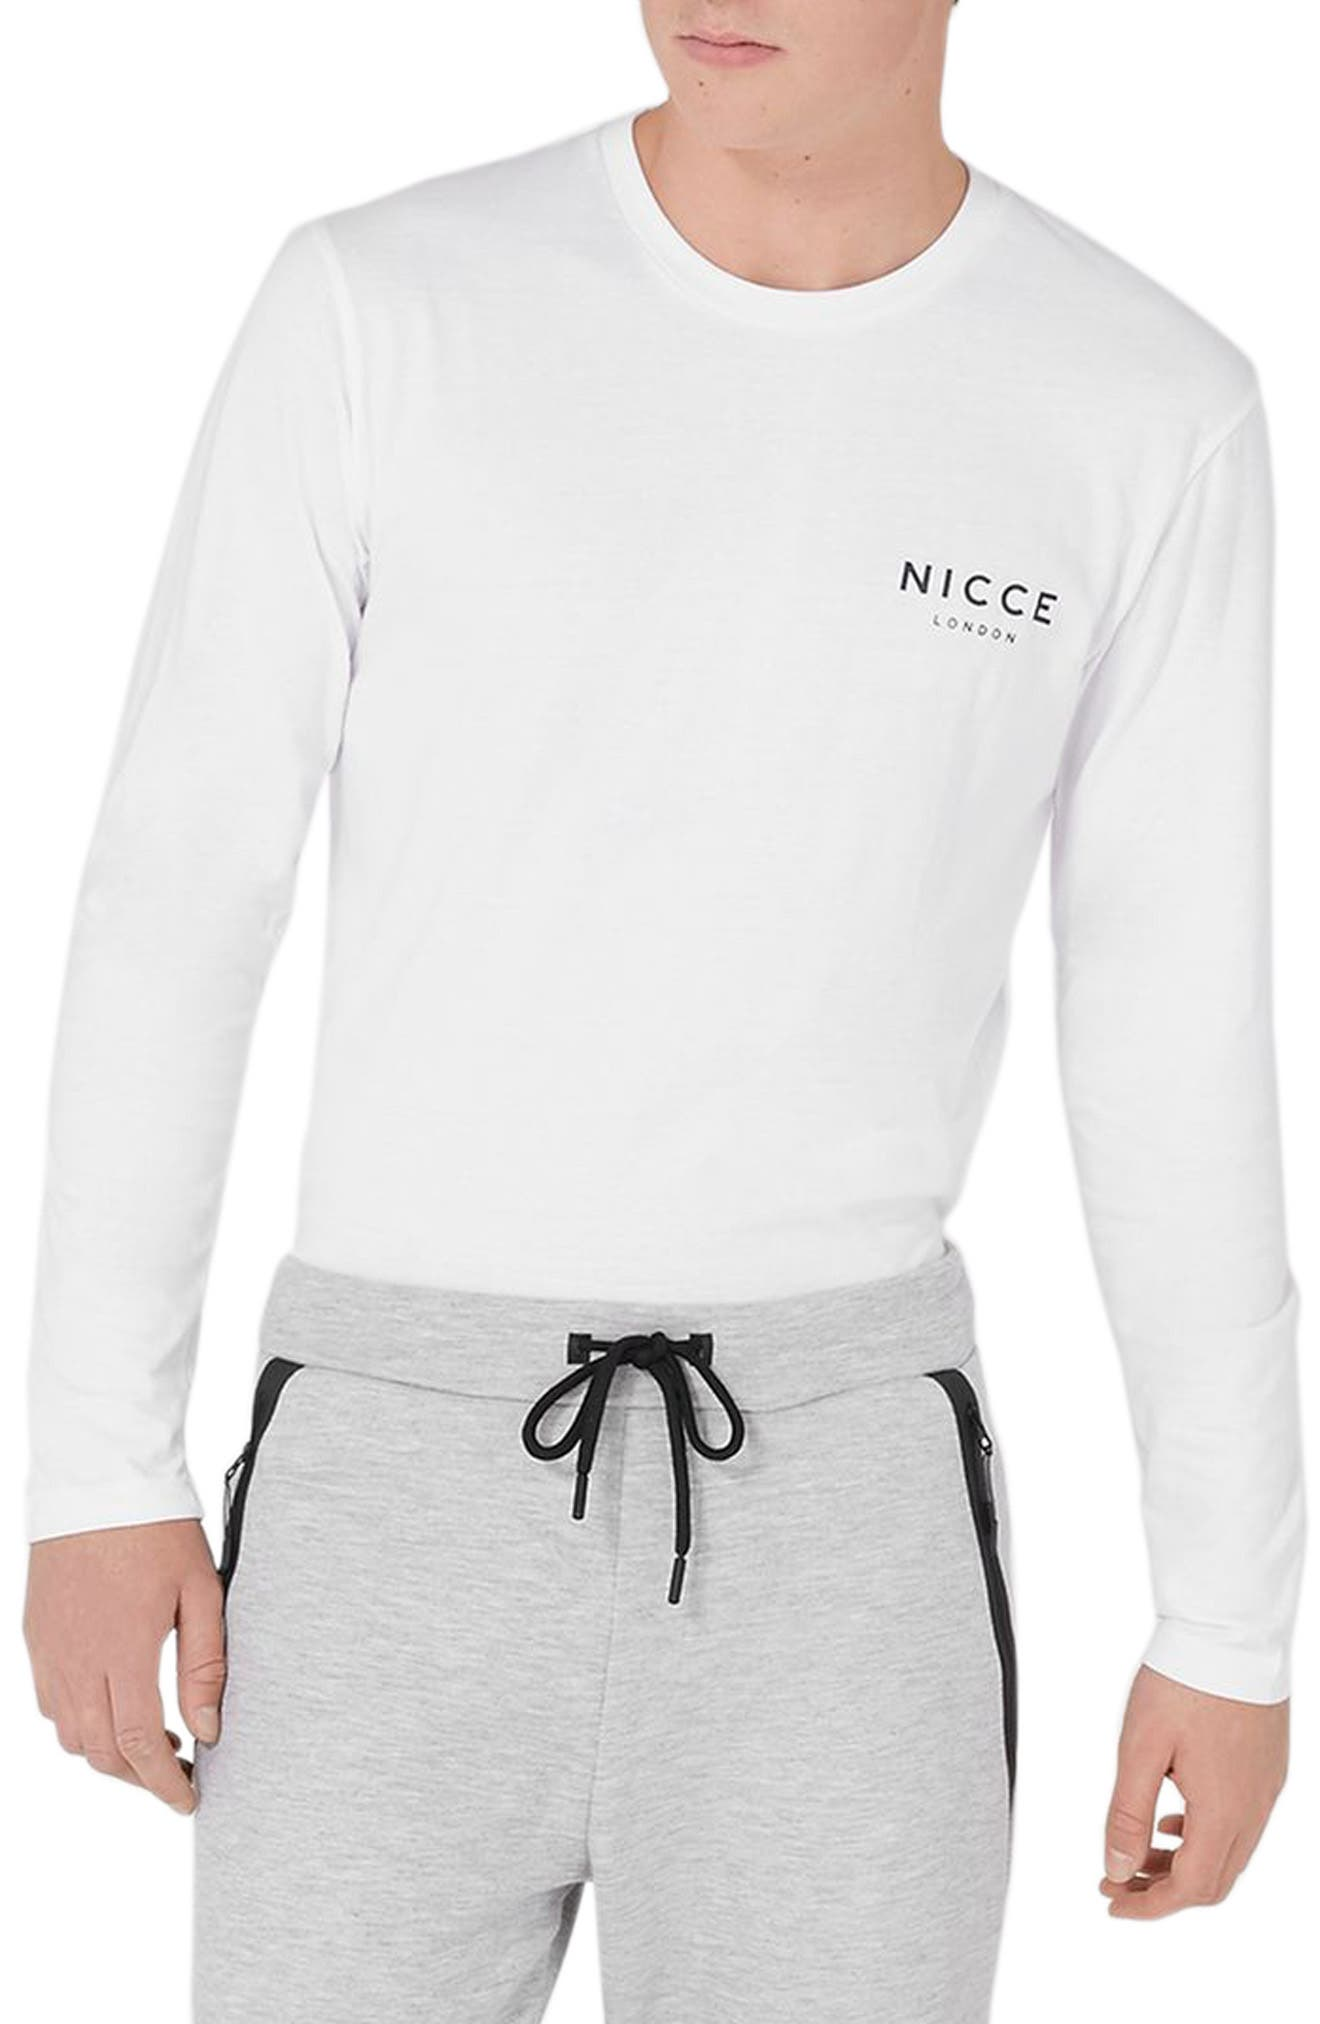 NICCE Graphic Long Sleeve T-Shirt,                         Main,                         color, 100